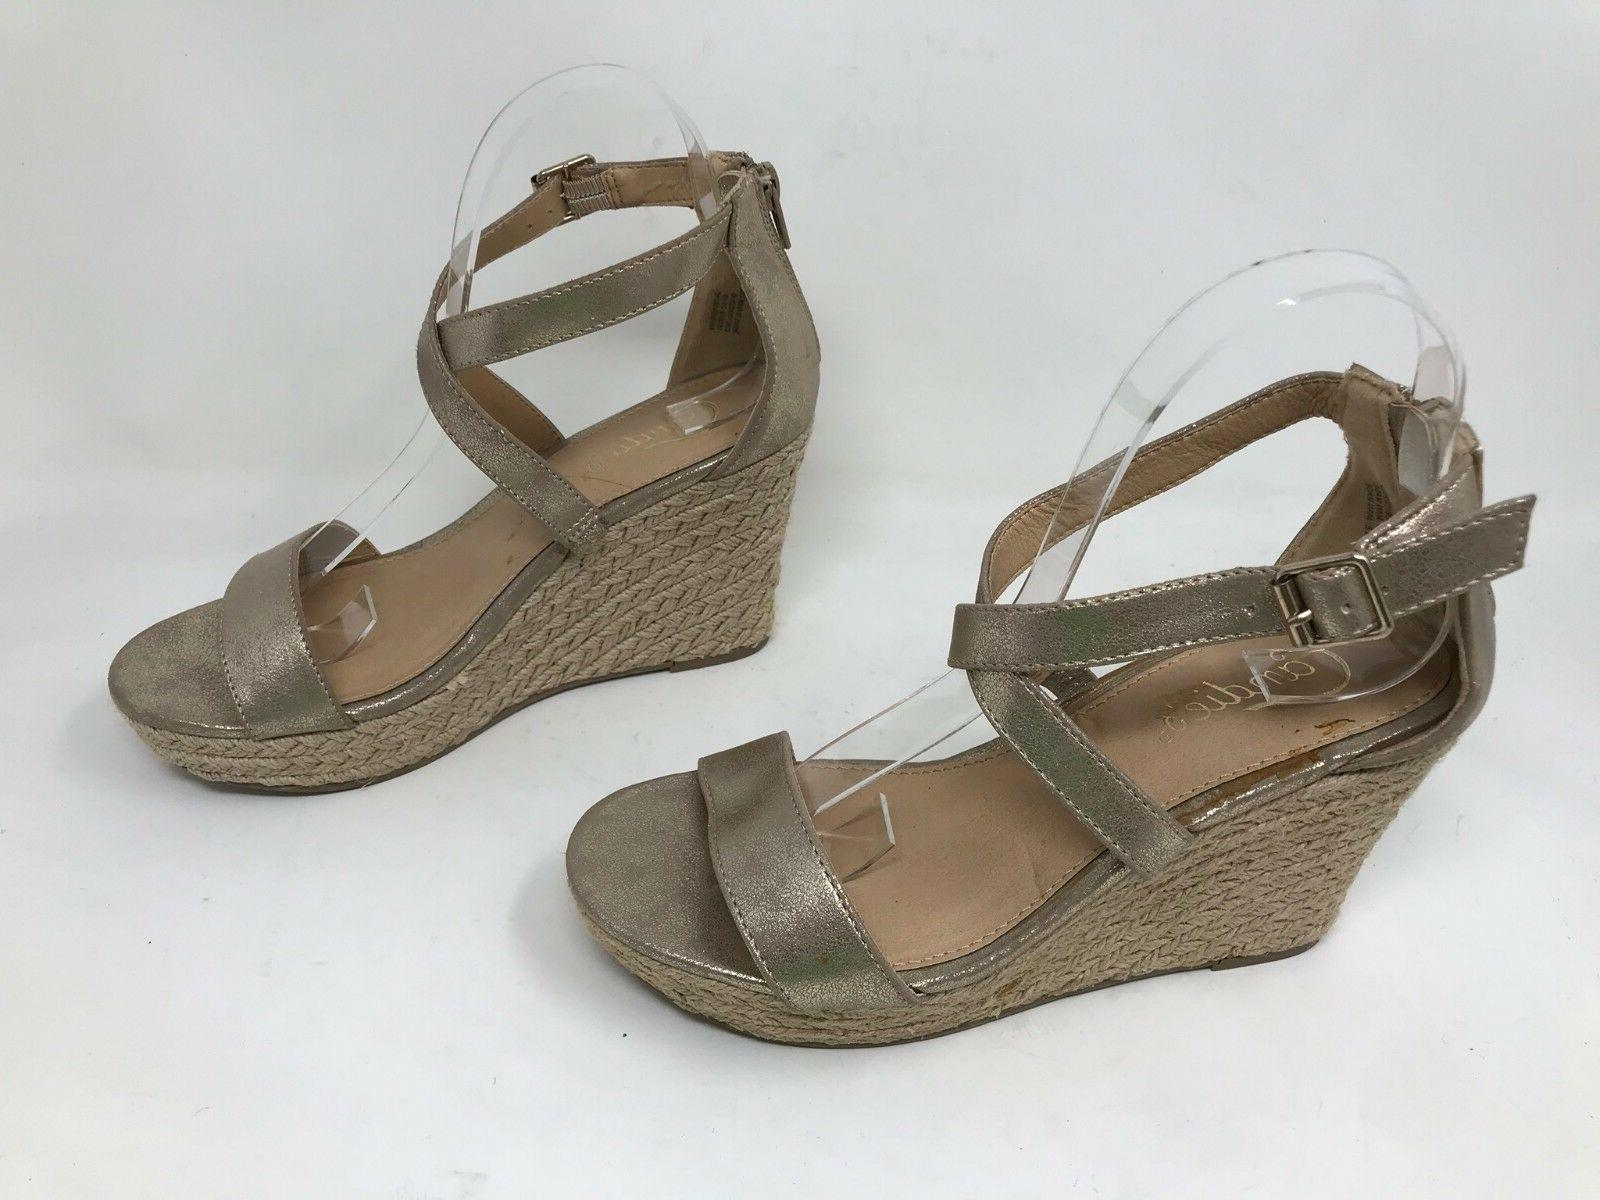 new w defects women s candie s